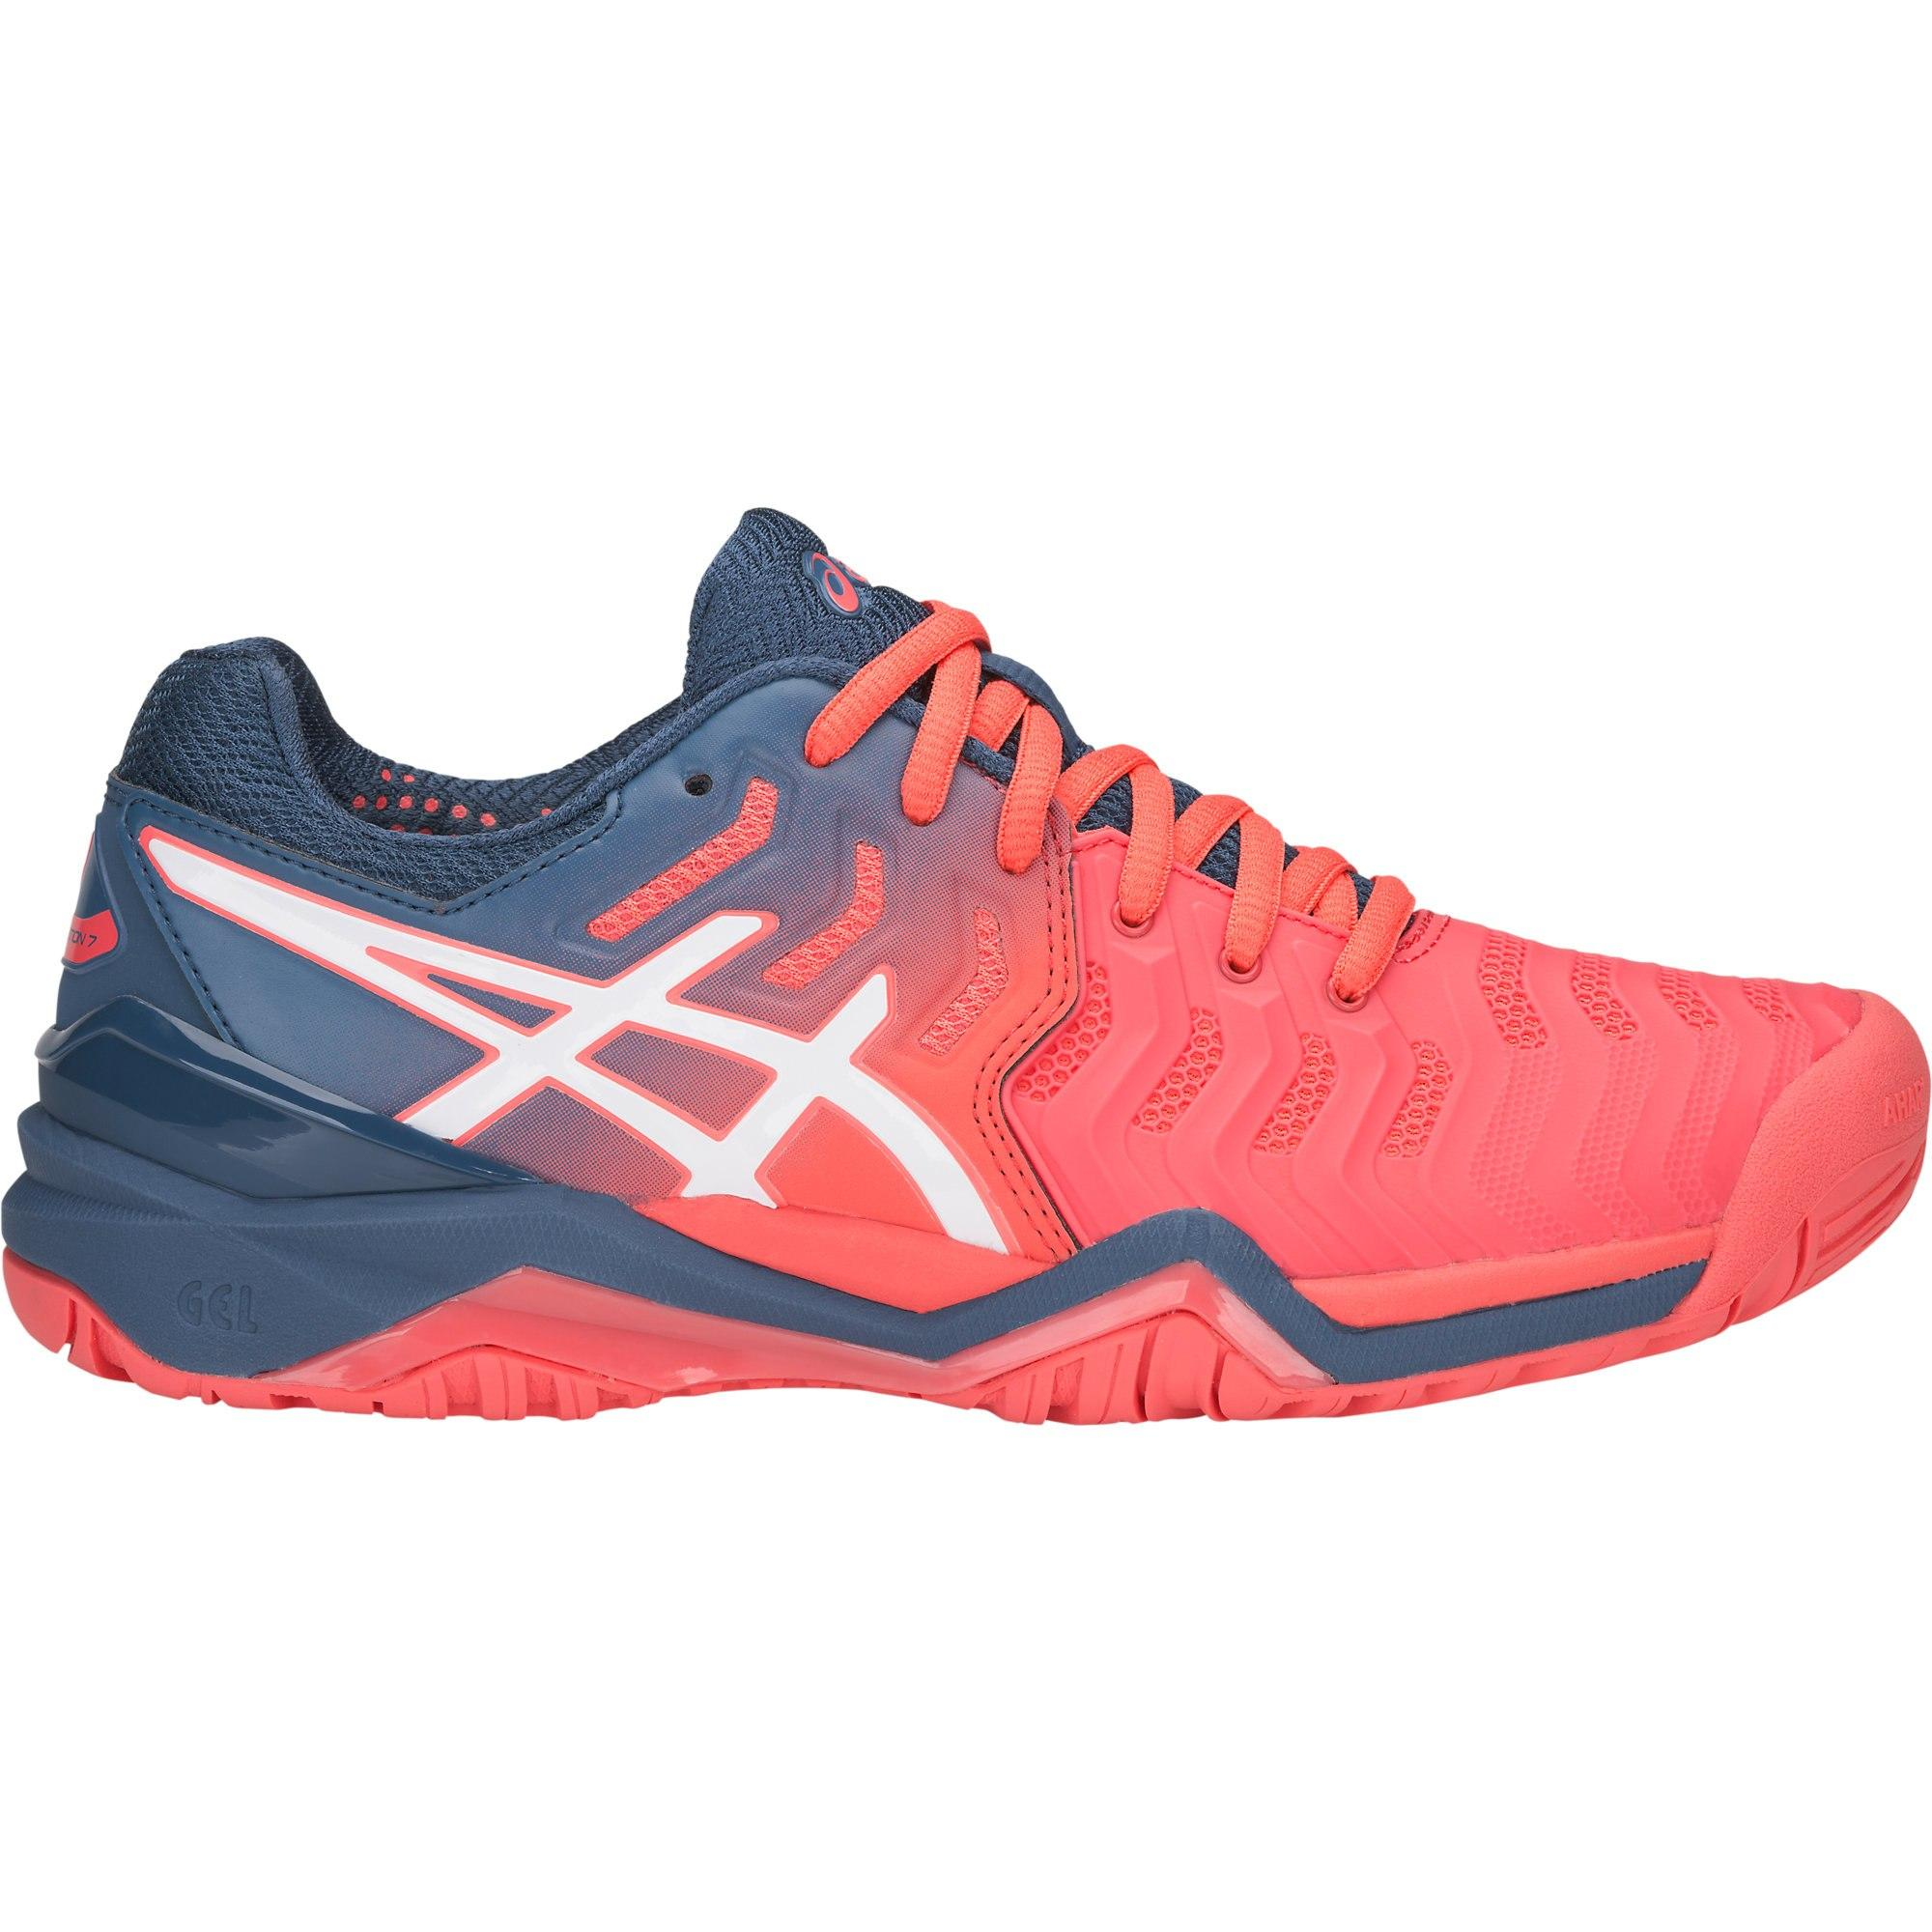 a4eba5483ec2 Asics Womens GEL-Resolution 7 Tennis Shoes - Papaya/Blue - Tennisnuts.com